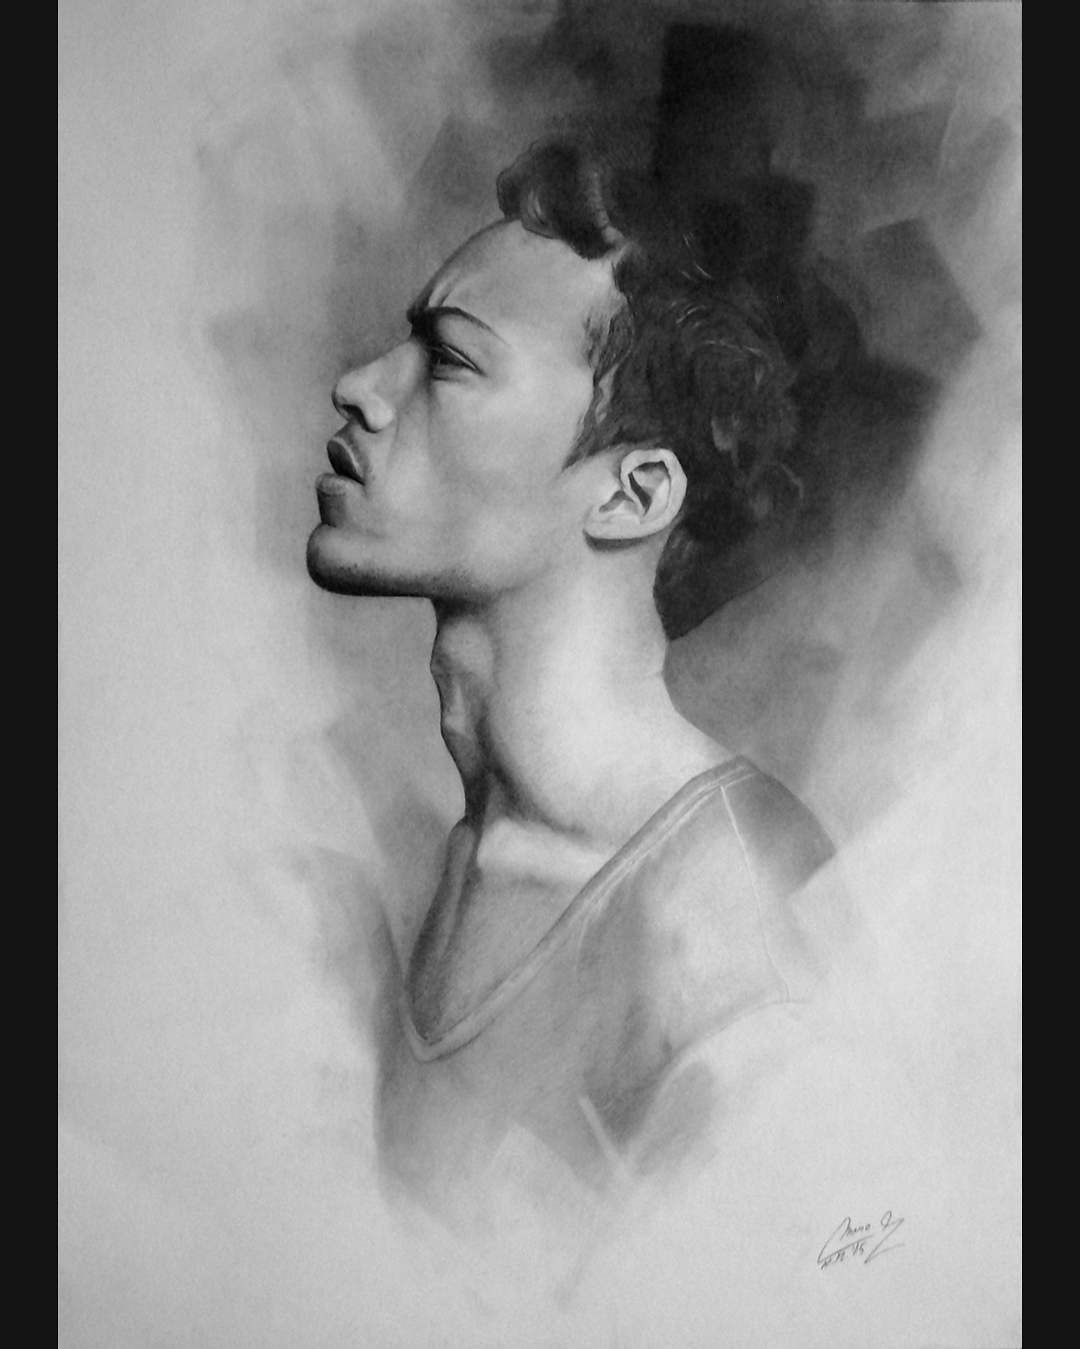 Past graphite pencil drawing 2015 70 x 50 cm what you think face portrait graphite pencil graphitepencil drawing pencildrawing drawingart